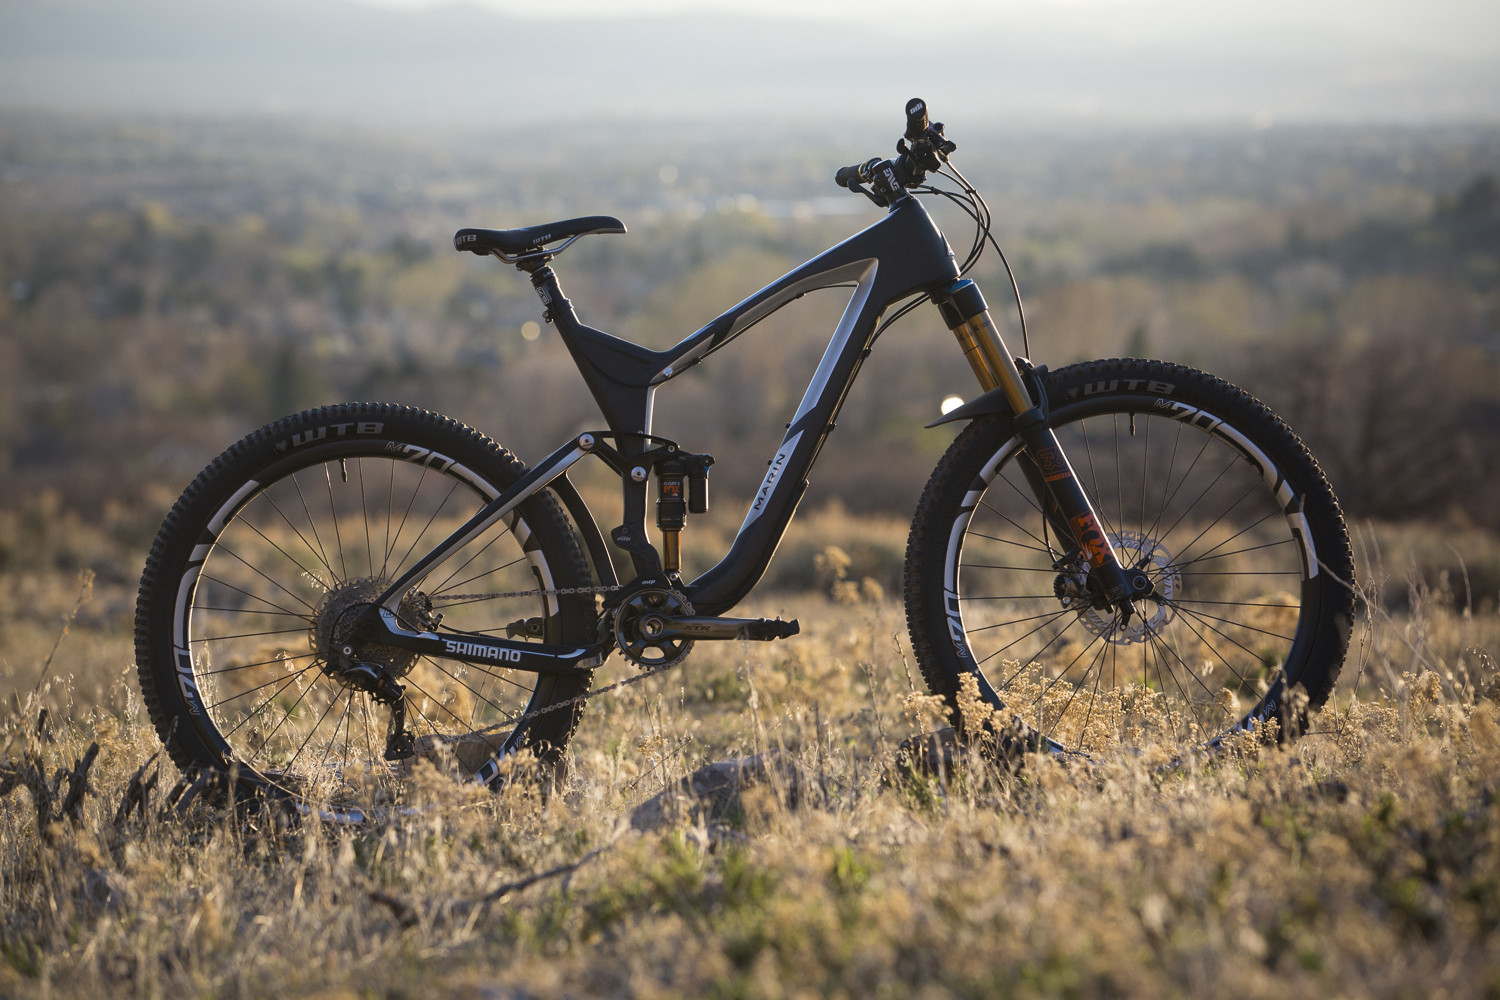 cdd8010d504 Pro Bike Check: Cody Kelley's Marin Attack Trail XT Pro - Pro Bike Check:  Cody Kelley's Marin Attack Trail - Mountain ...